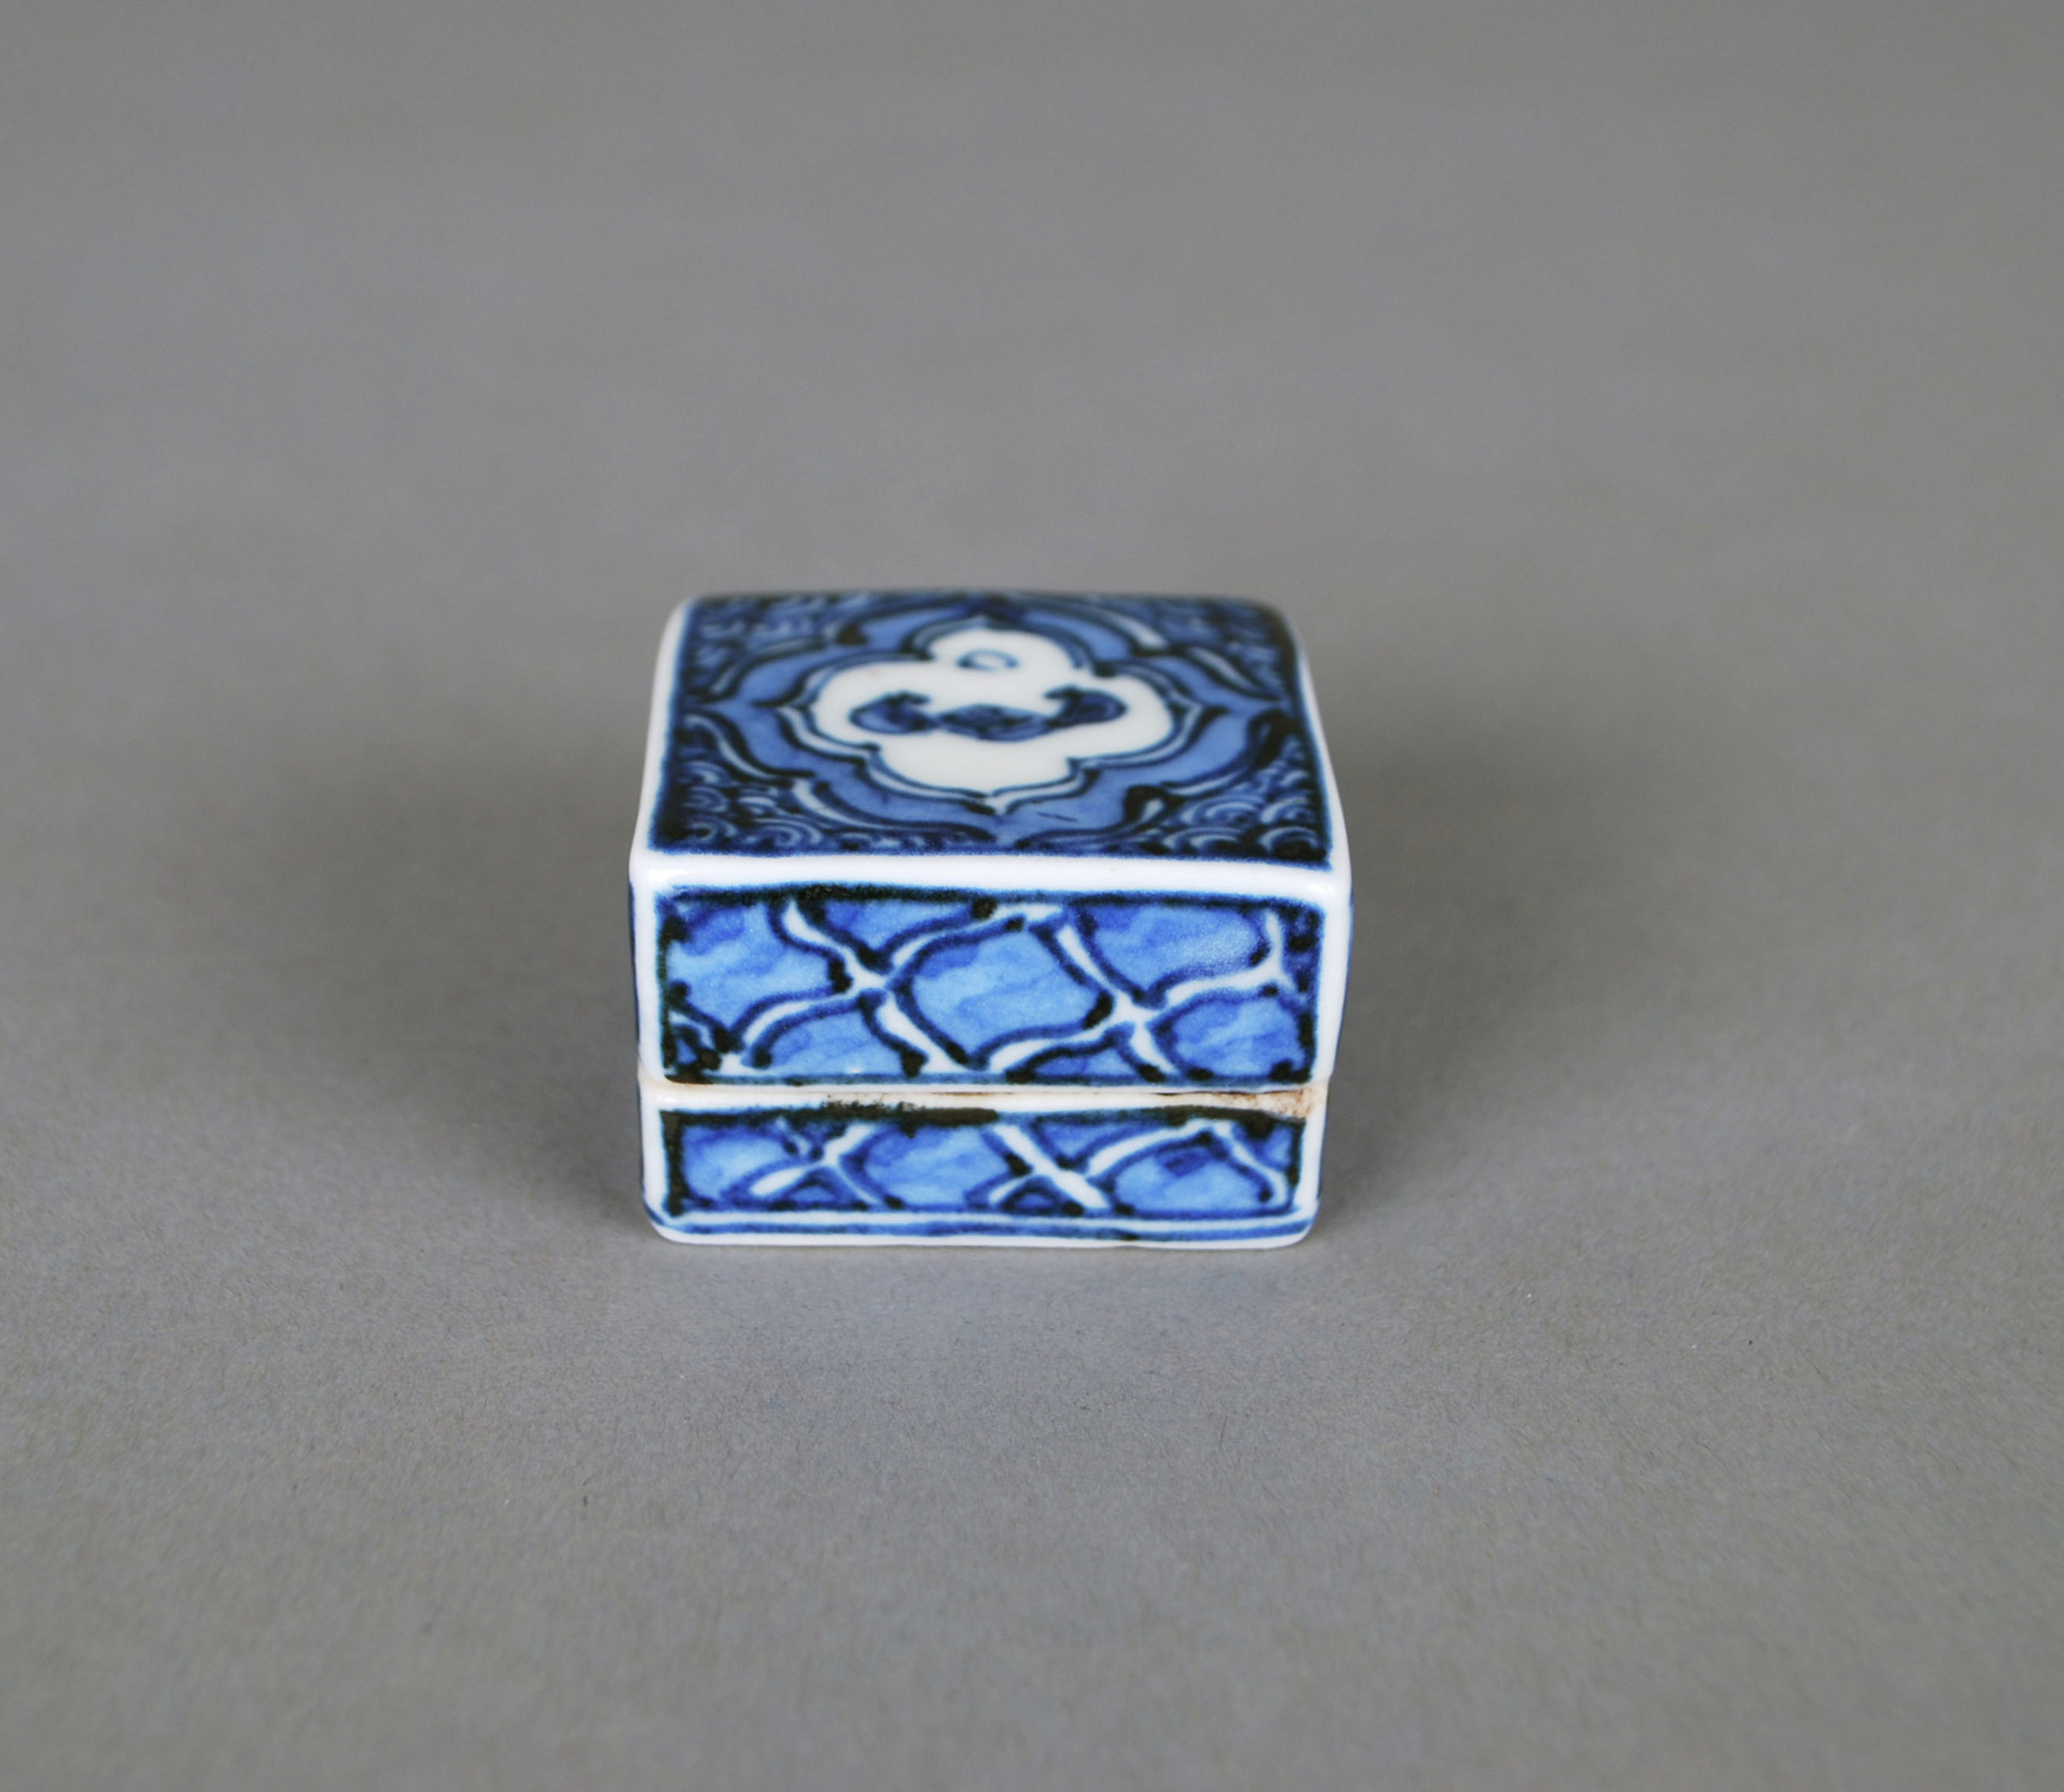 A small, lidded box decorated in blue and white with a bat under the moon and lozenge patterns on the sides.